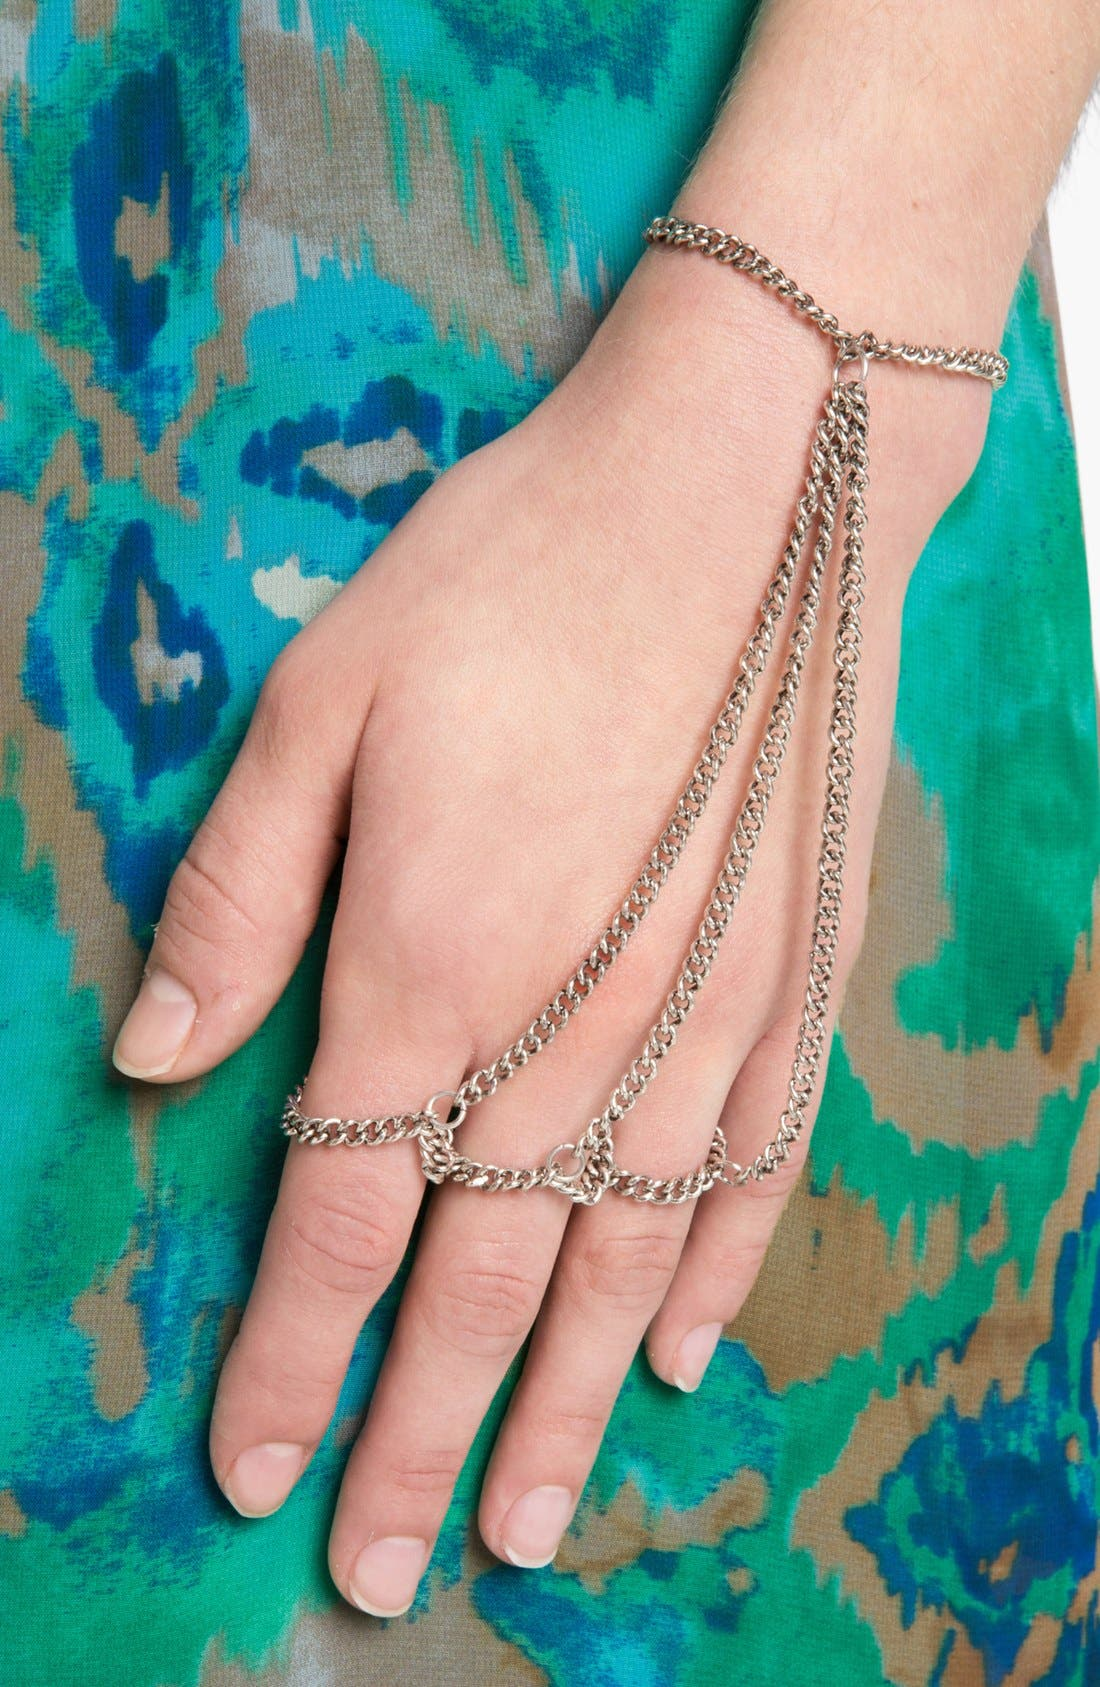 Main Image - Orion Three Finger Hand Chain